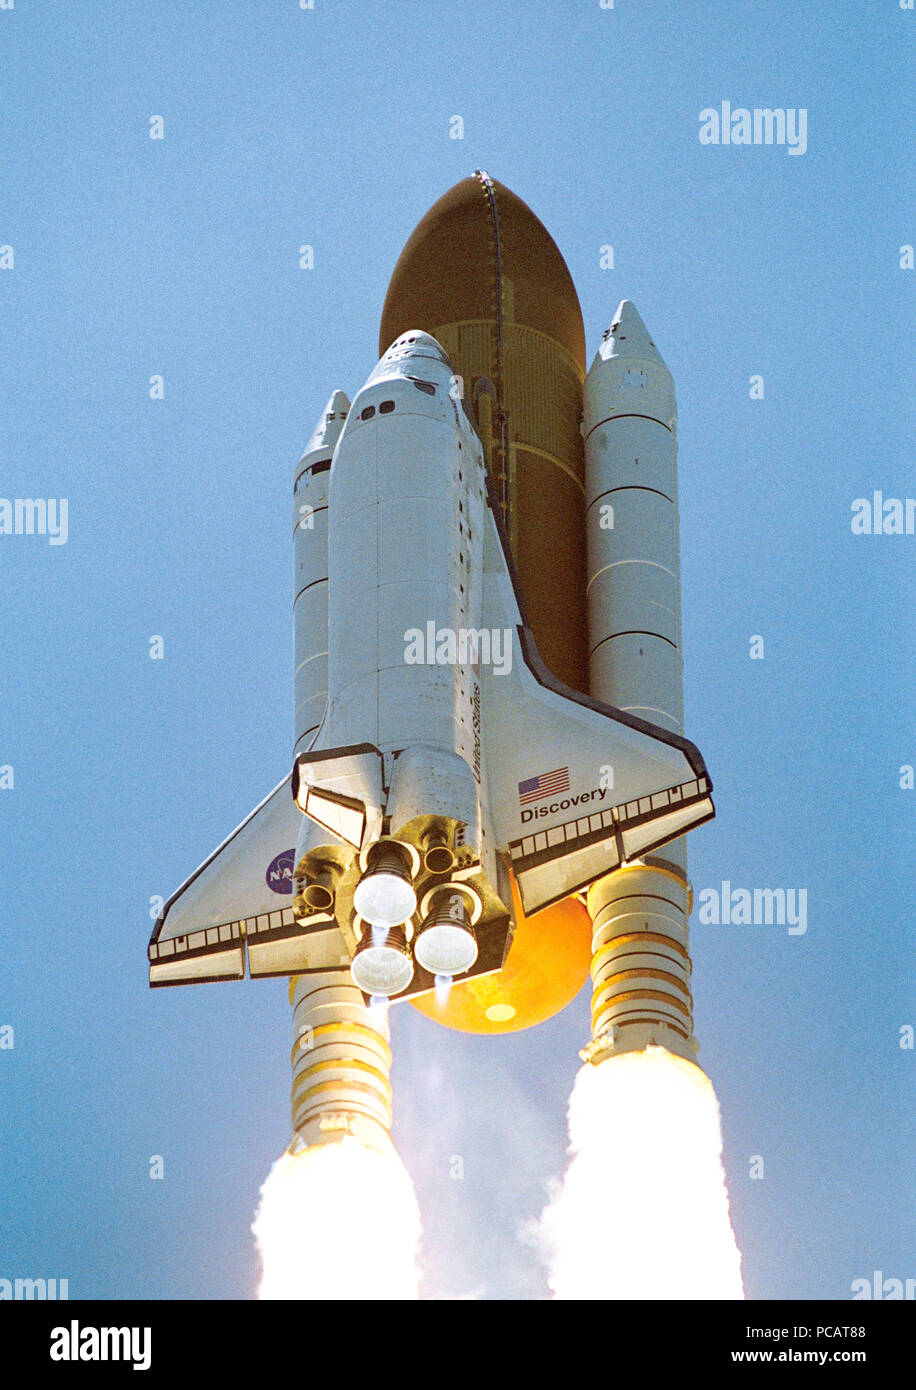 space shuttle launch july 4 2006 - photo #26